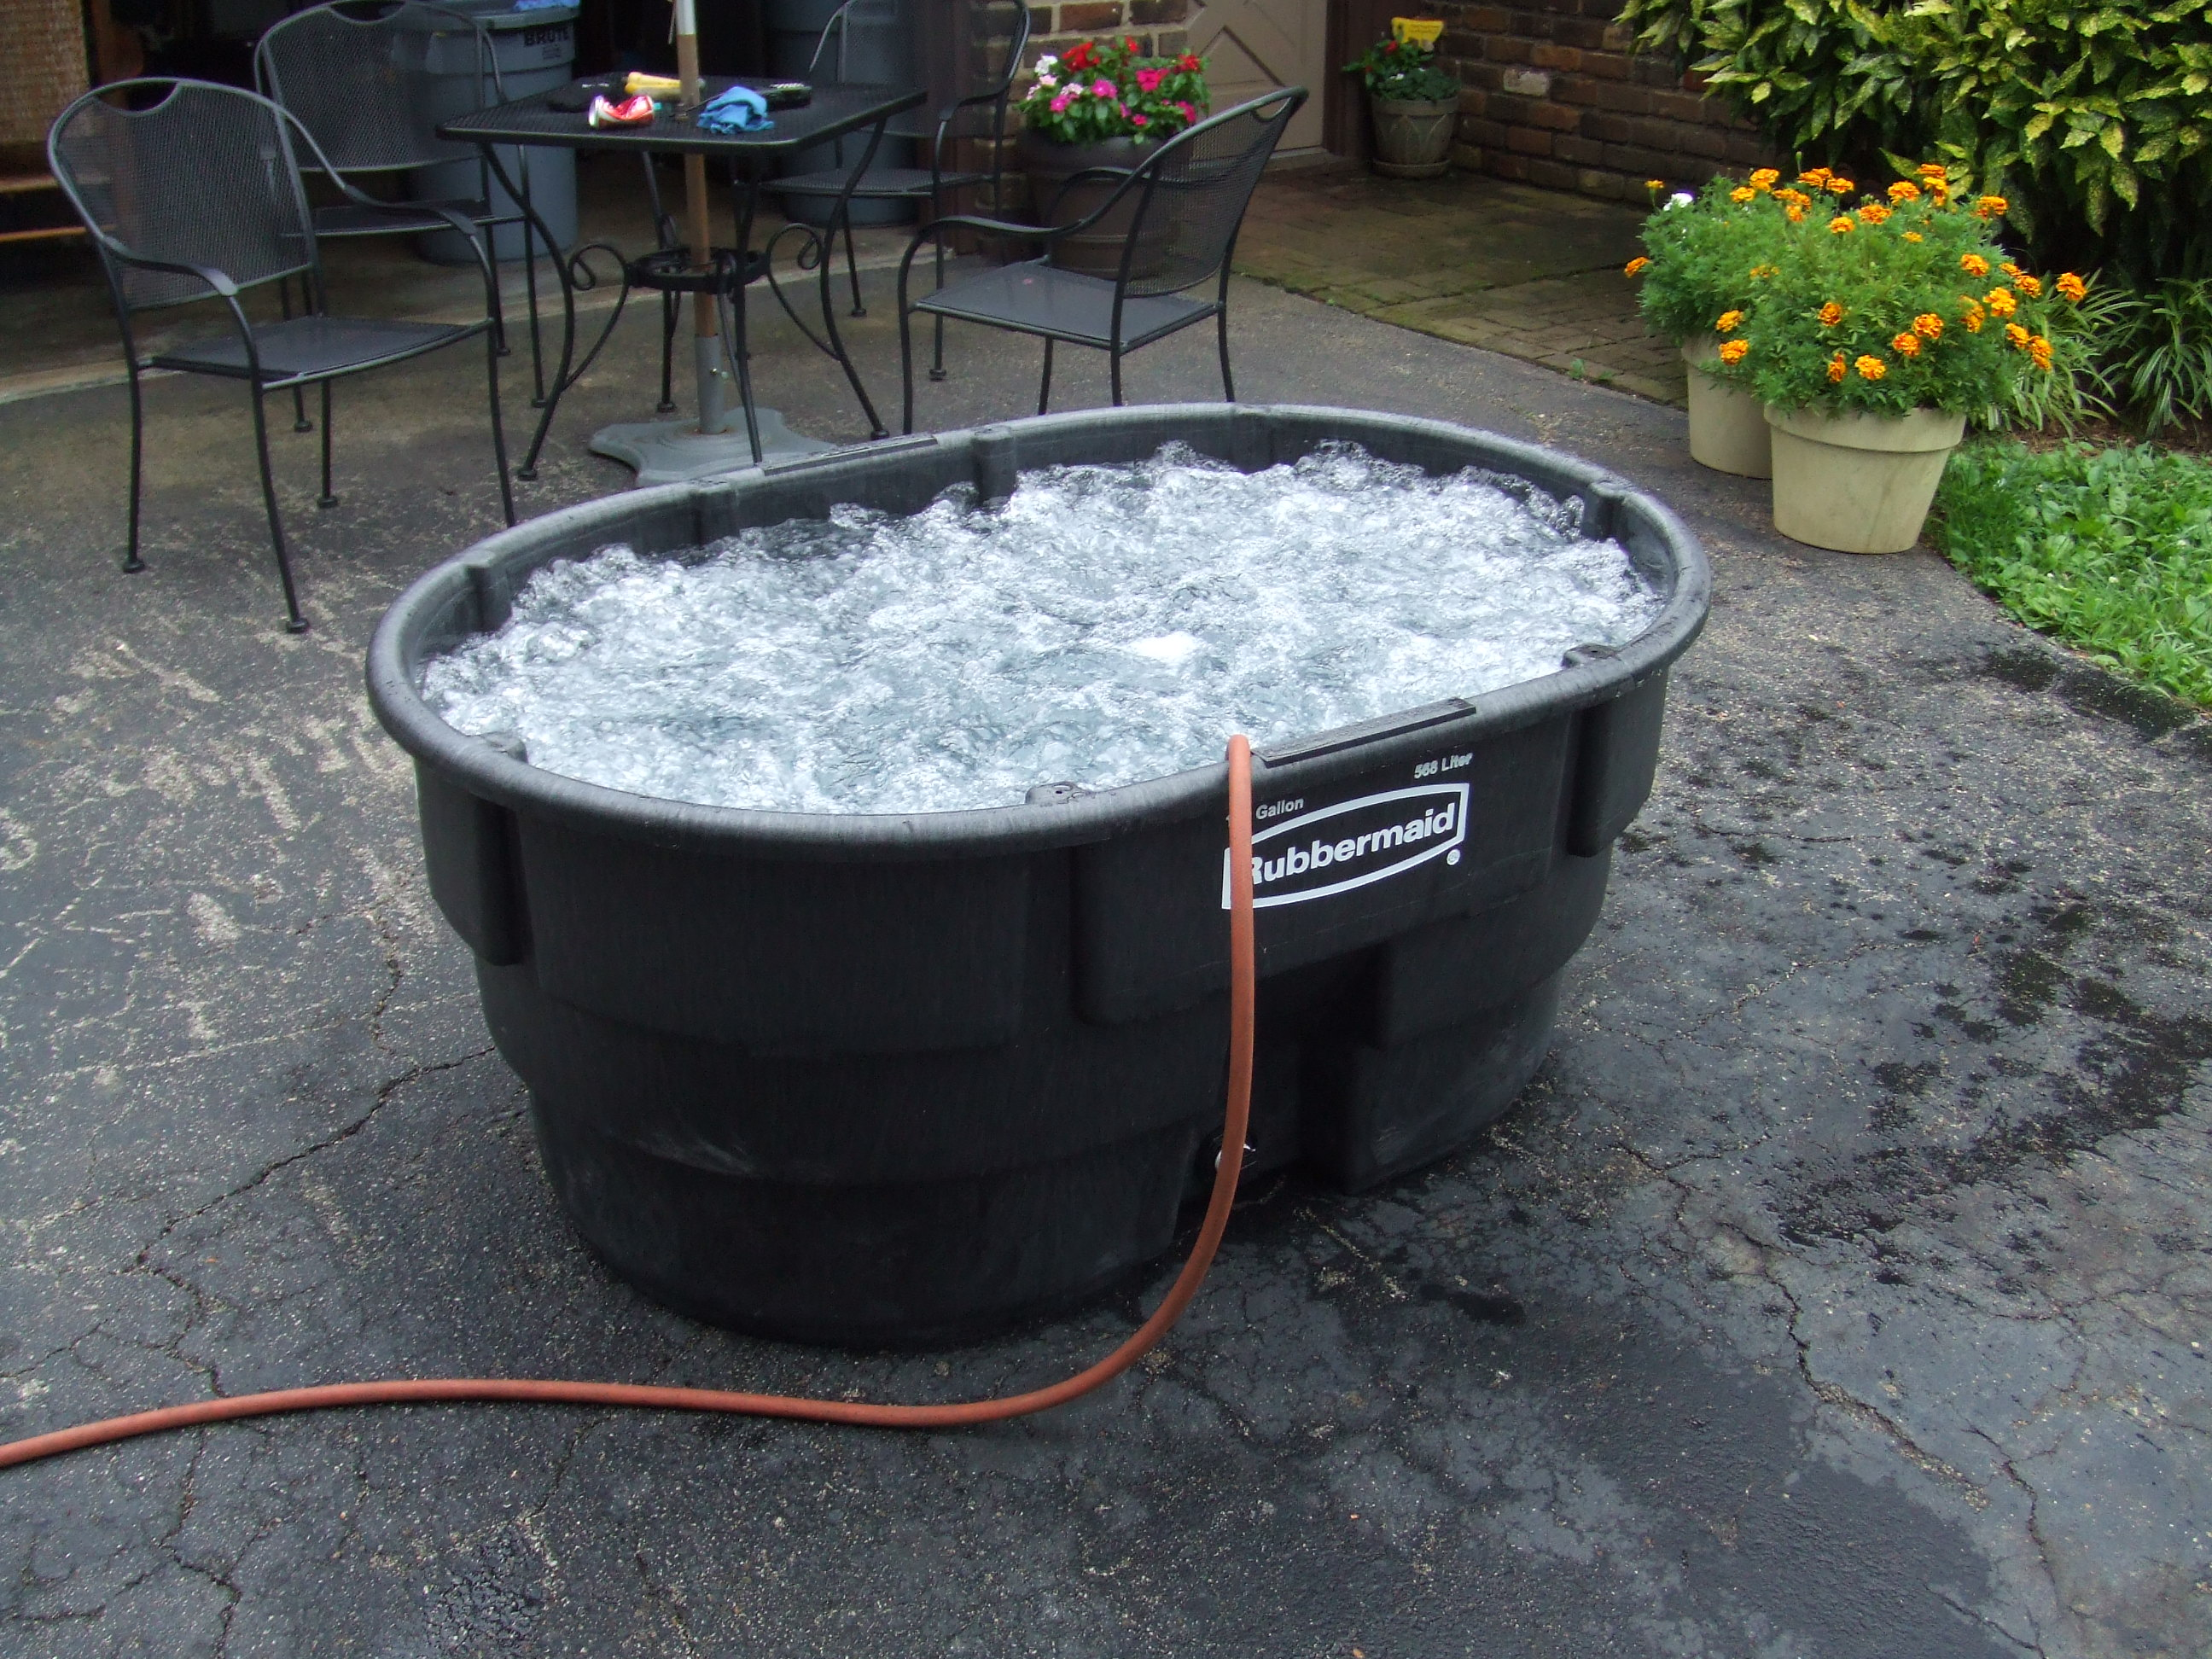 Single person stock tank hot tub with bubbles from air for How to make ice in a fish tank